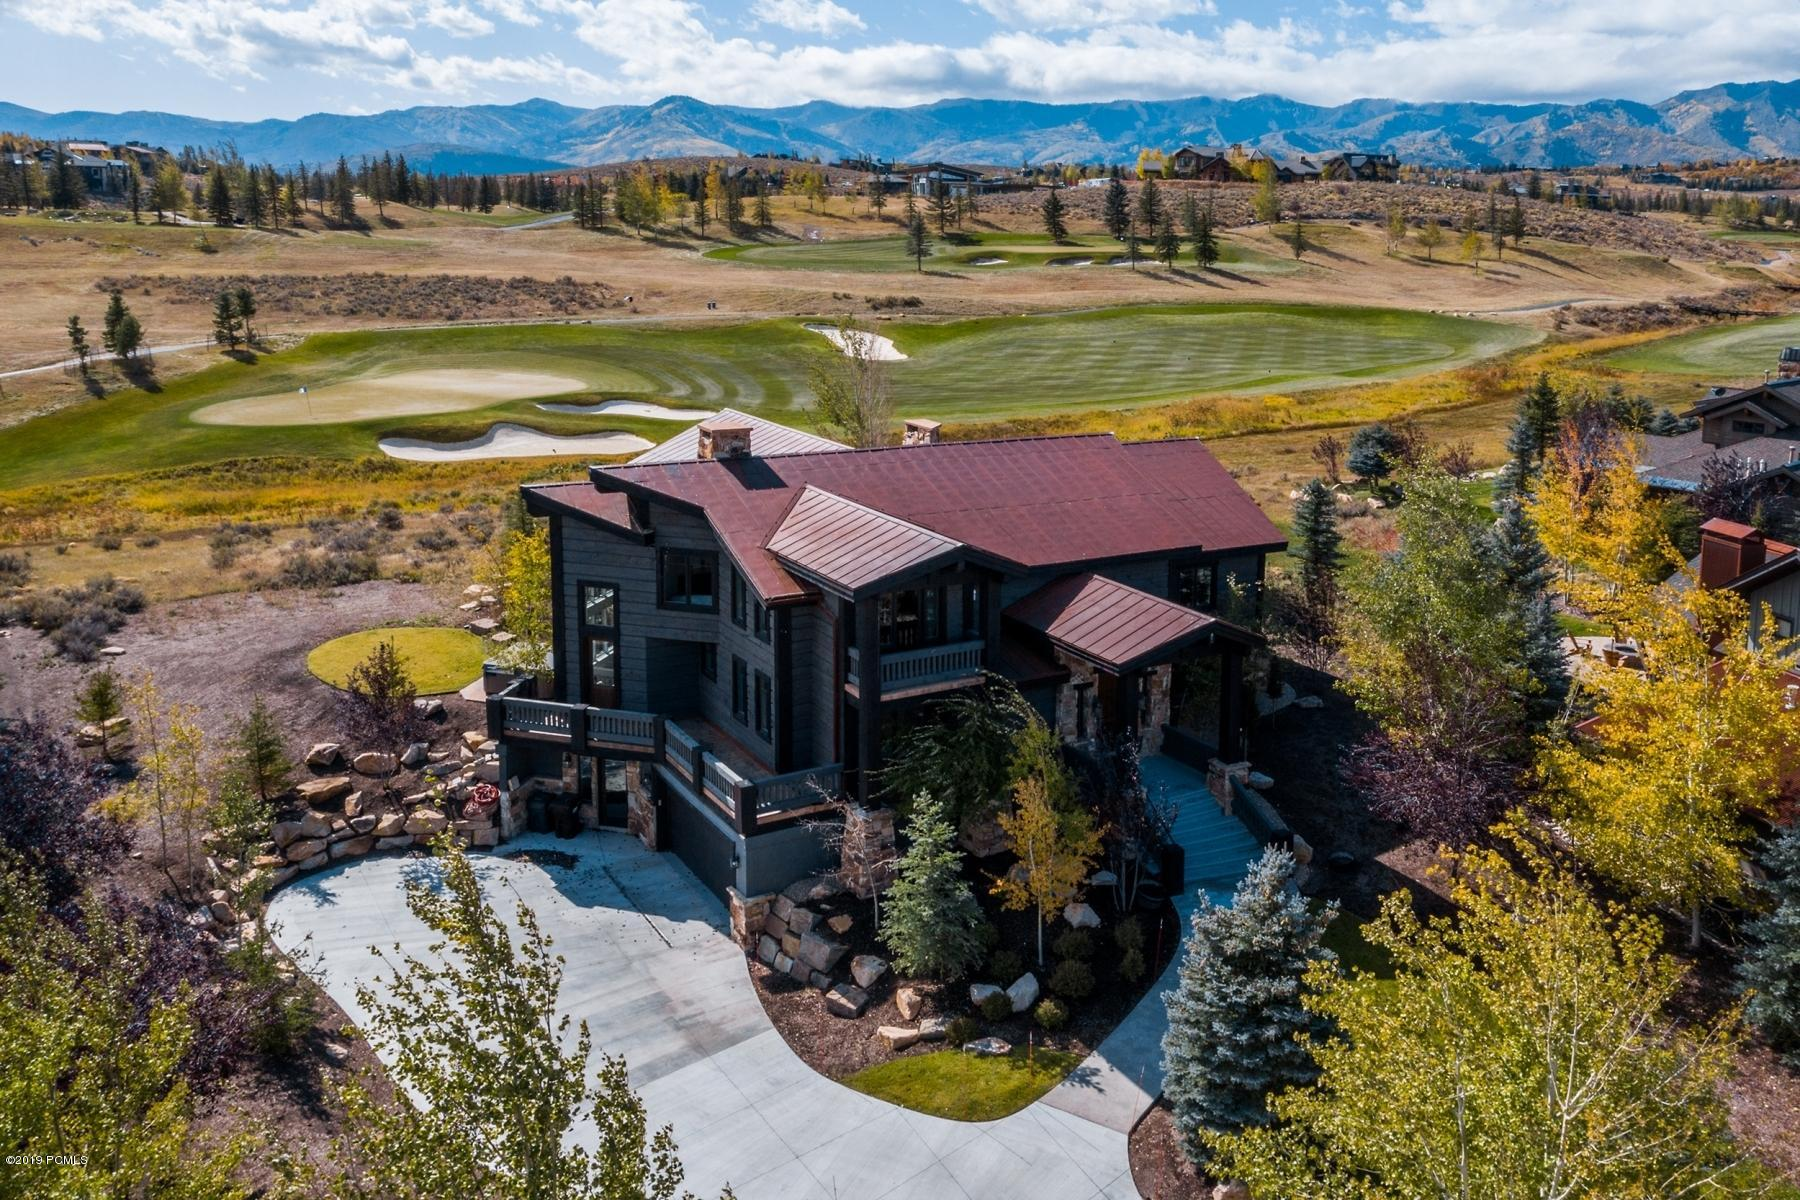 8135 Glenwild Drive, Park City, Utah 84098, 4 Bedrooms Bedrooms, ,5 BathroomsBathrooms,Single Family,For Sale,Glenwild,20190109112430415765000000